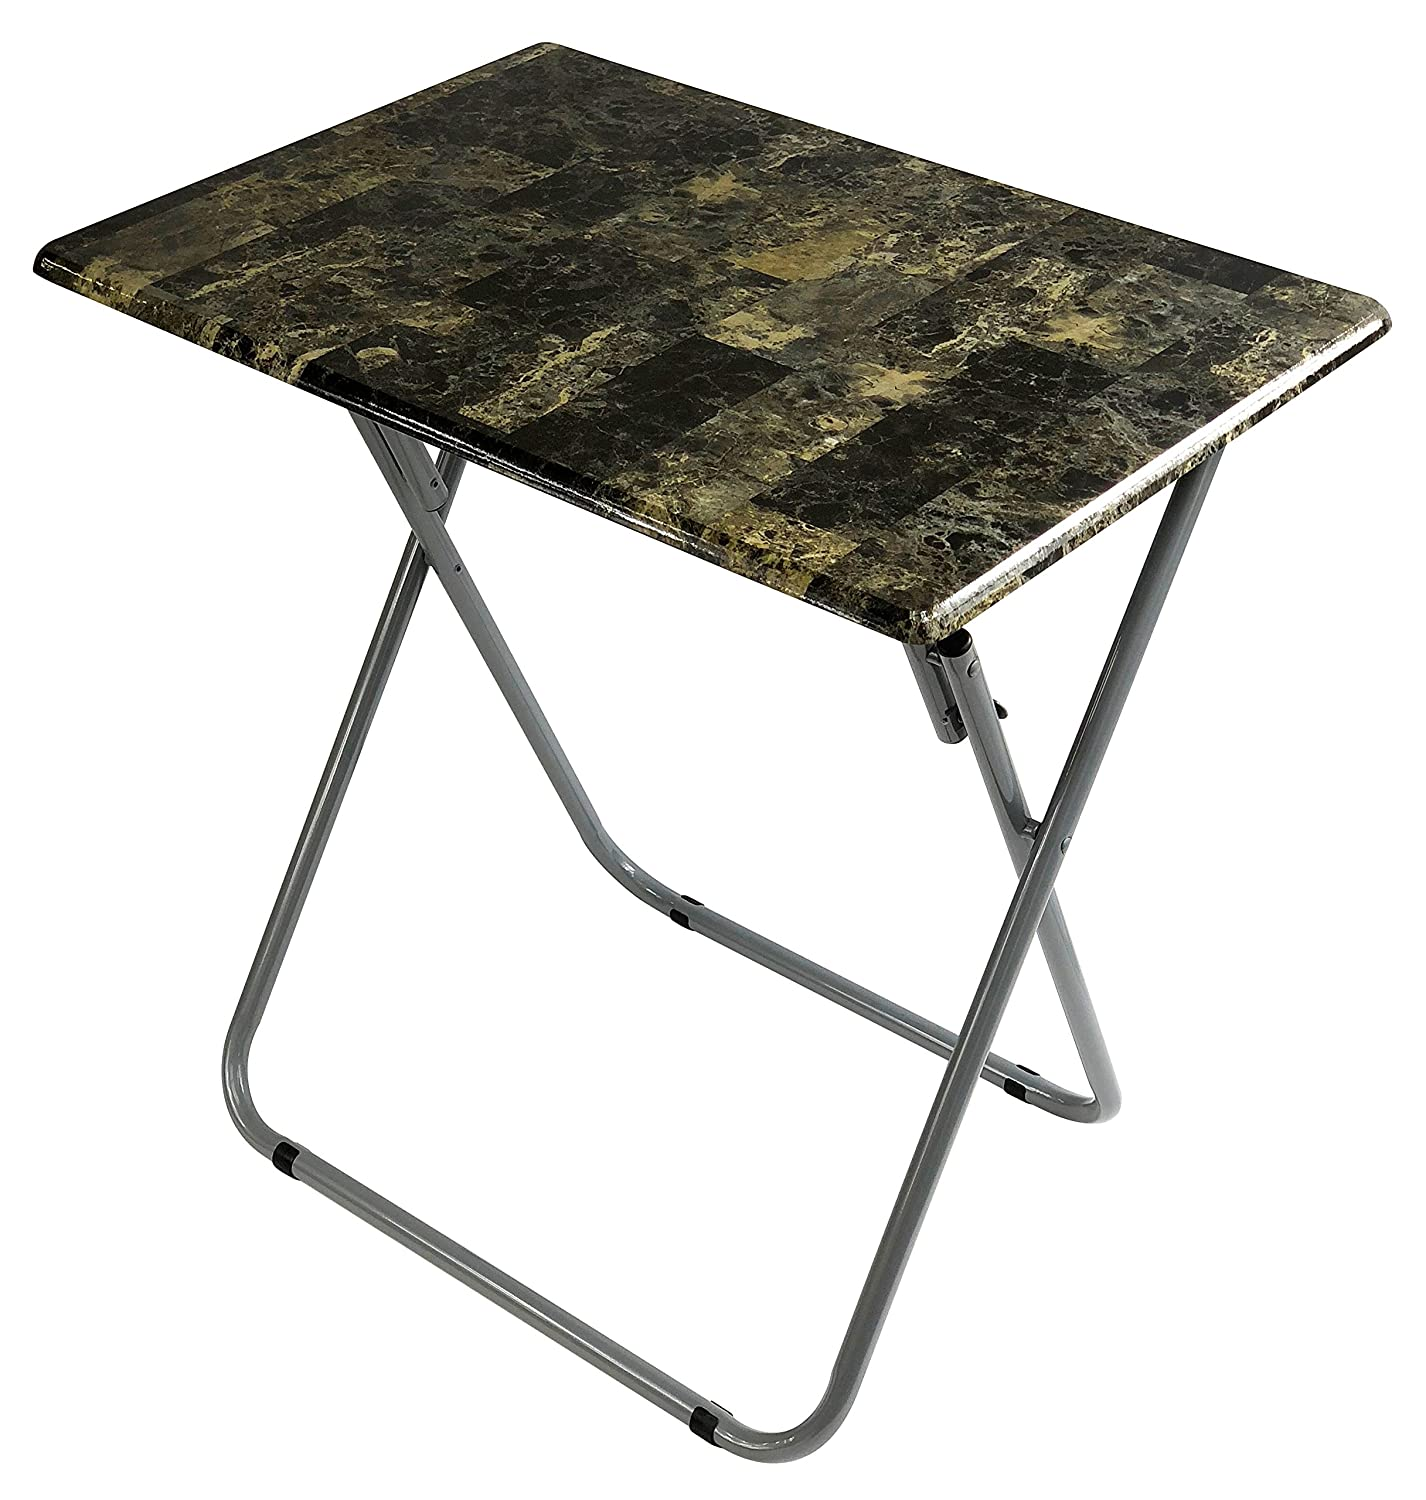 Wee's Beyond 1307 Over-Sized TV Tray Folding Table, Marbleized Wee's Beyond